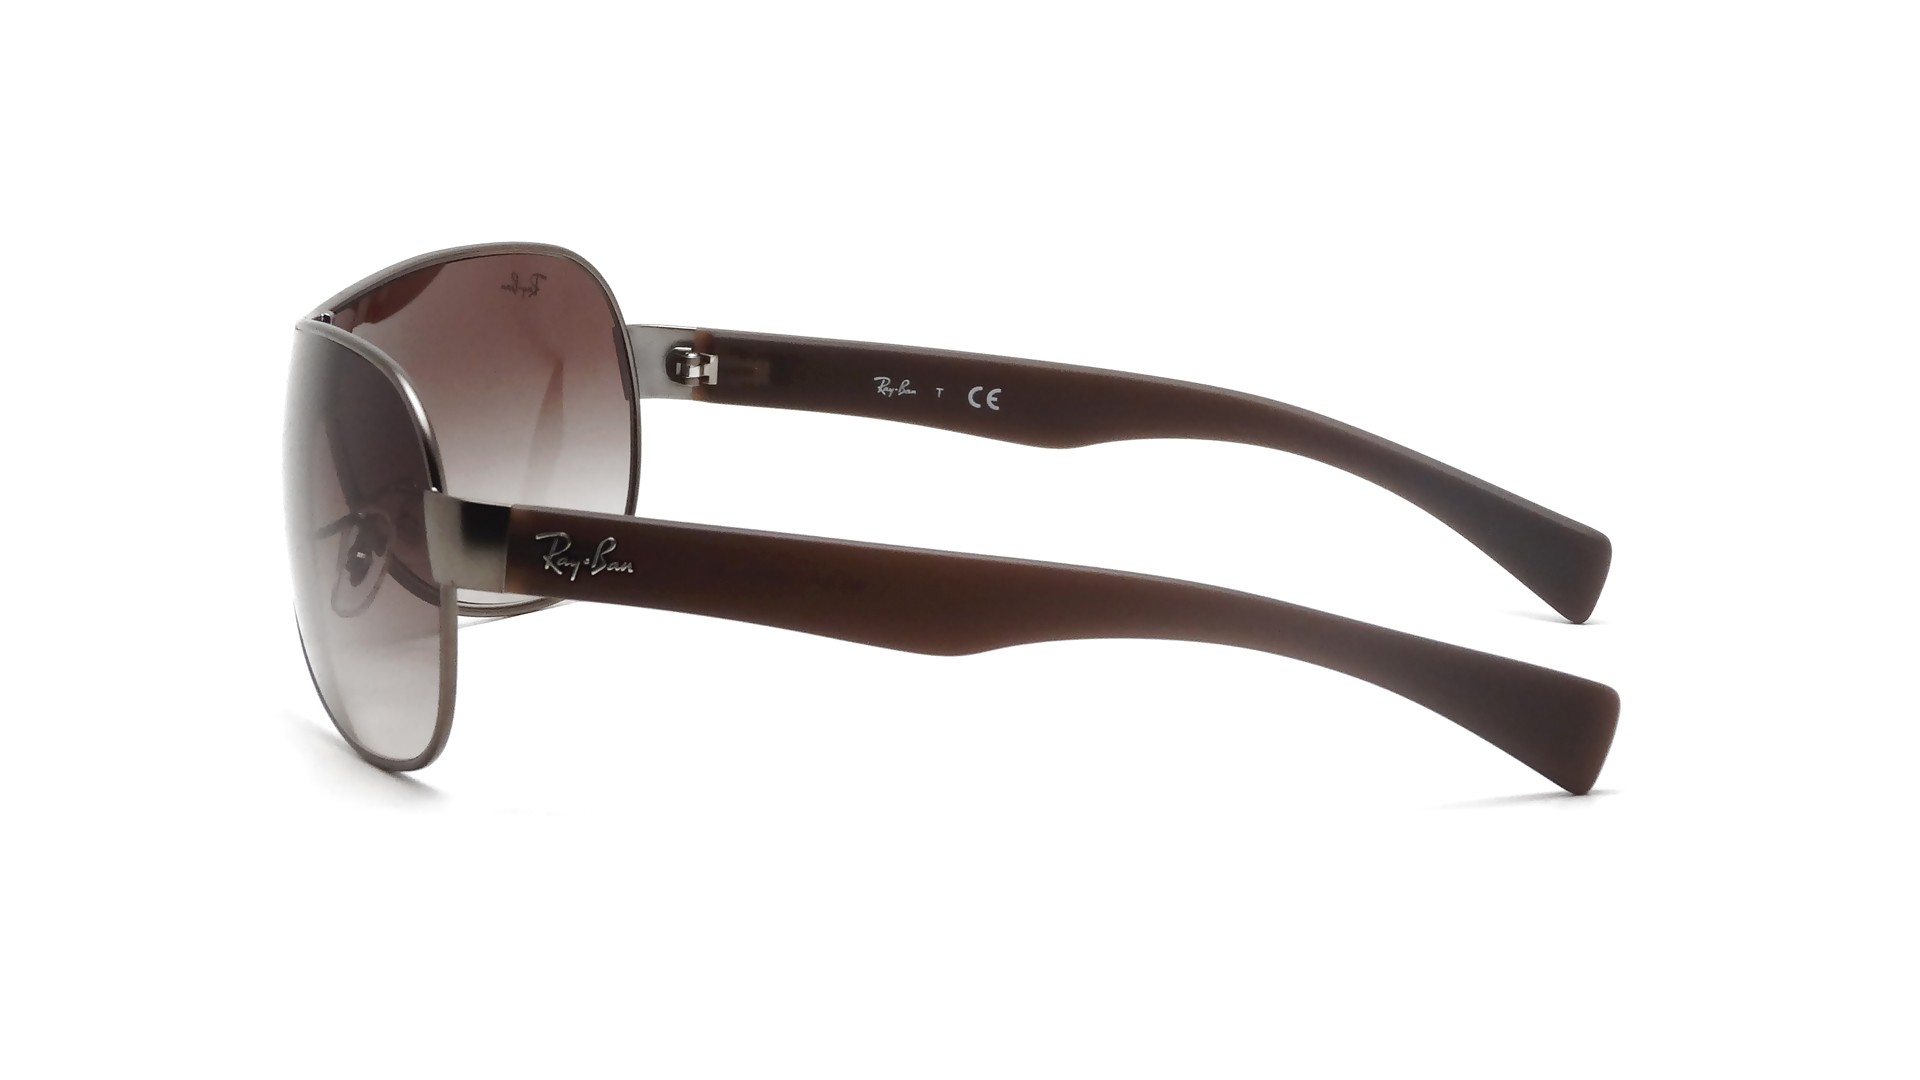 b07ff34d755 Sunglasses Ray-Ban Masque Emma Brown RB3471 029 13 32 Small Gradient